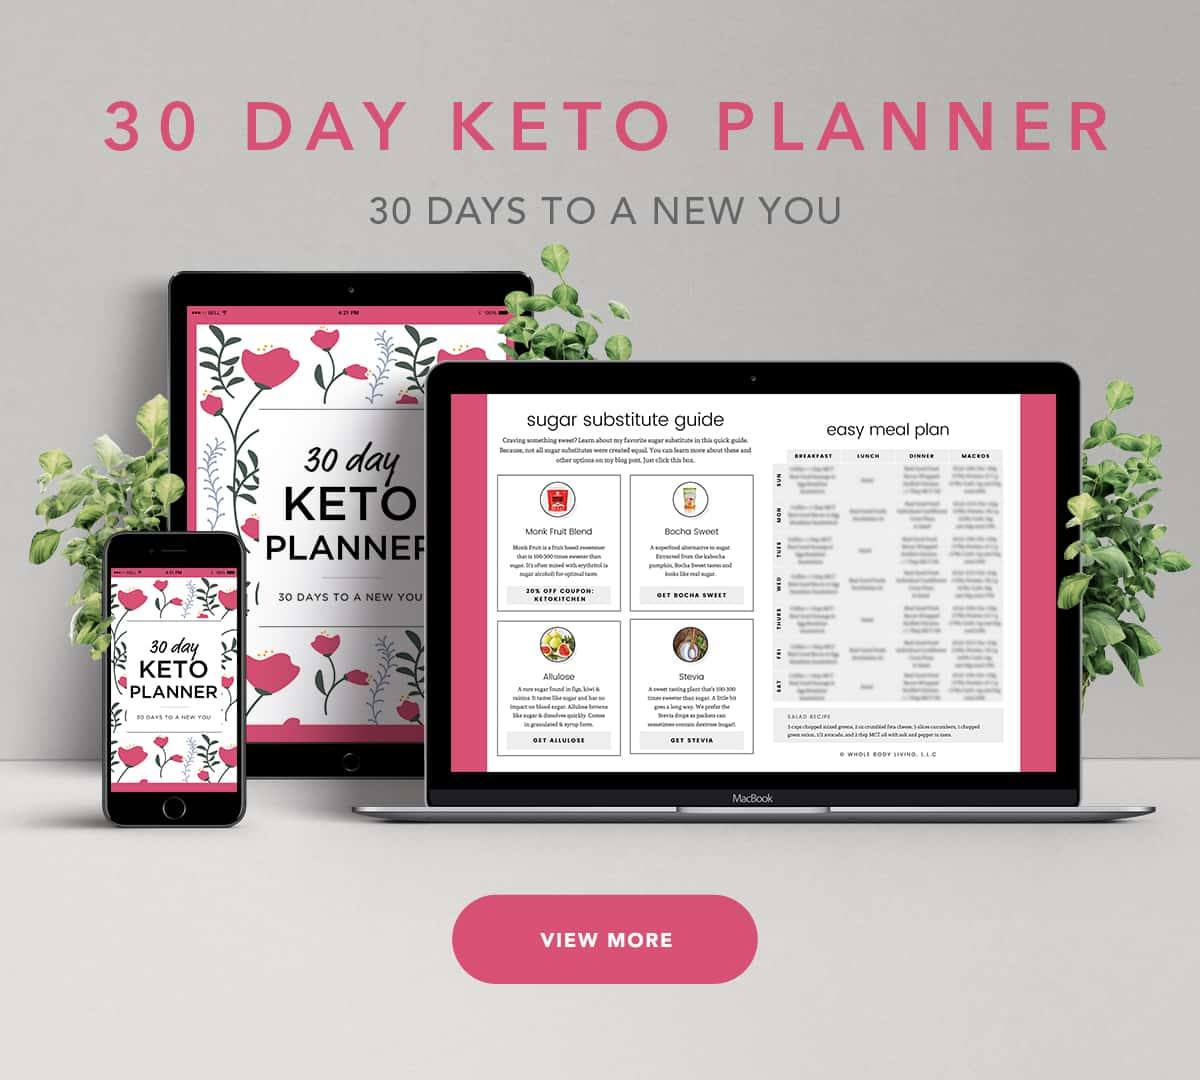 30 day keto planner on screens